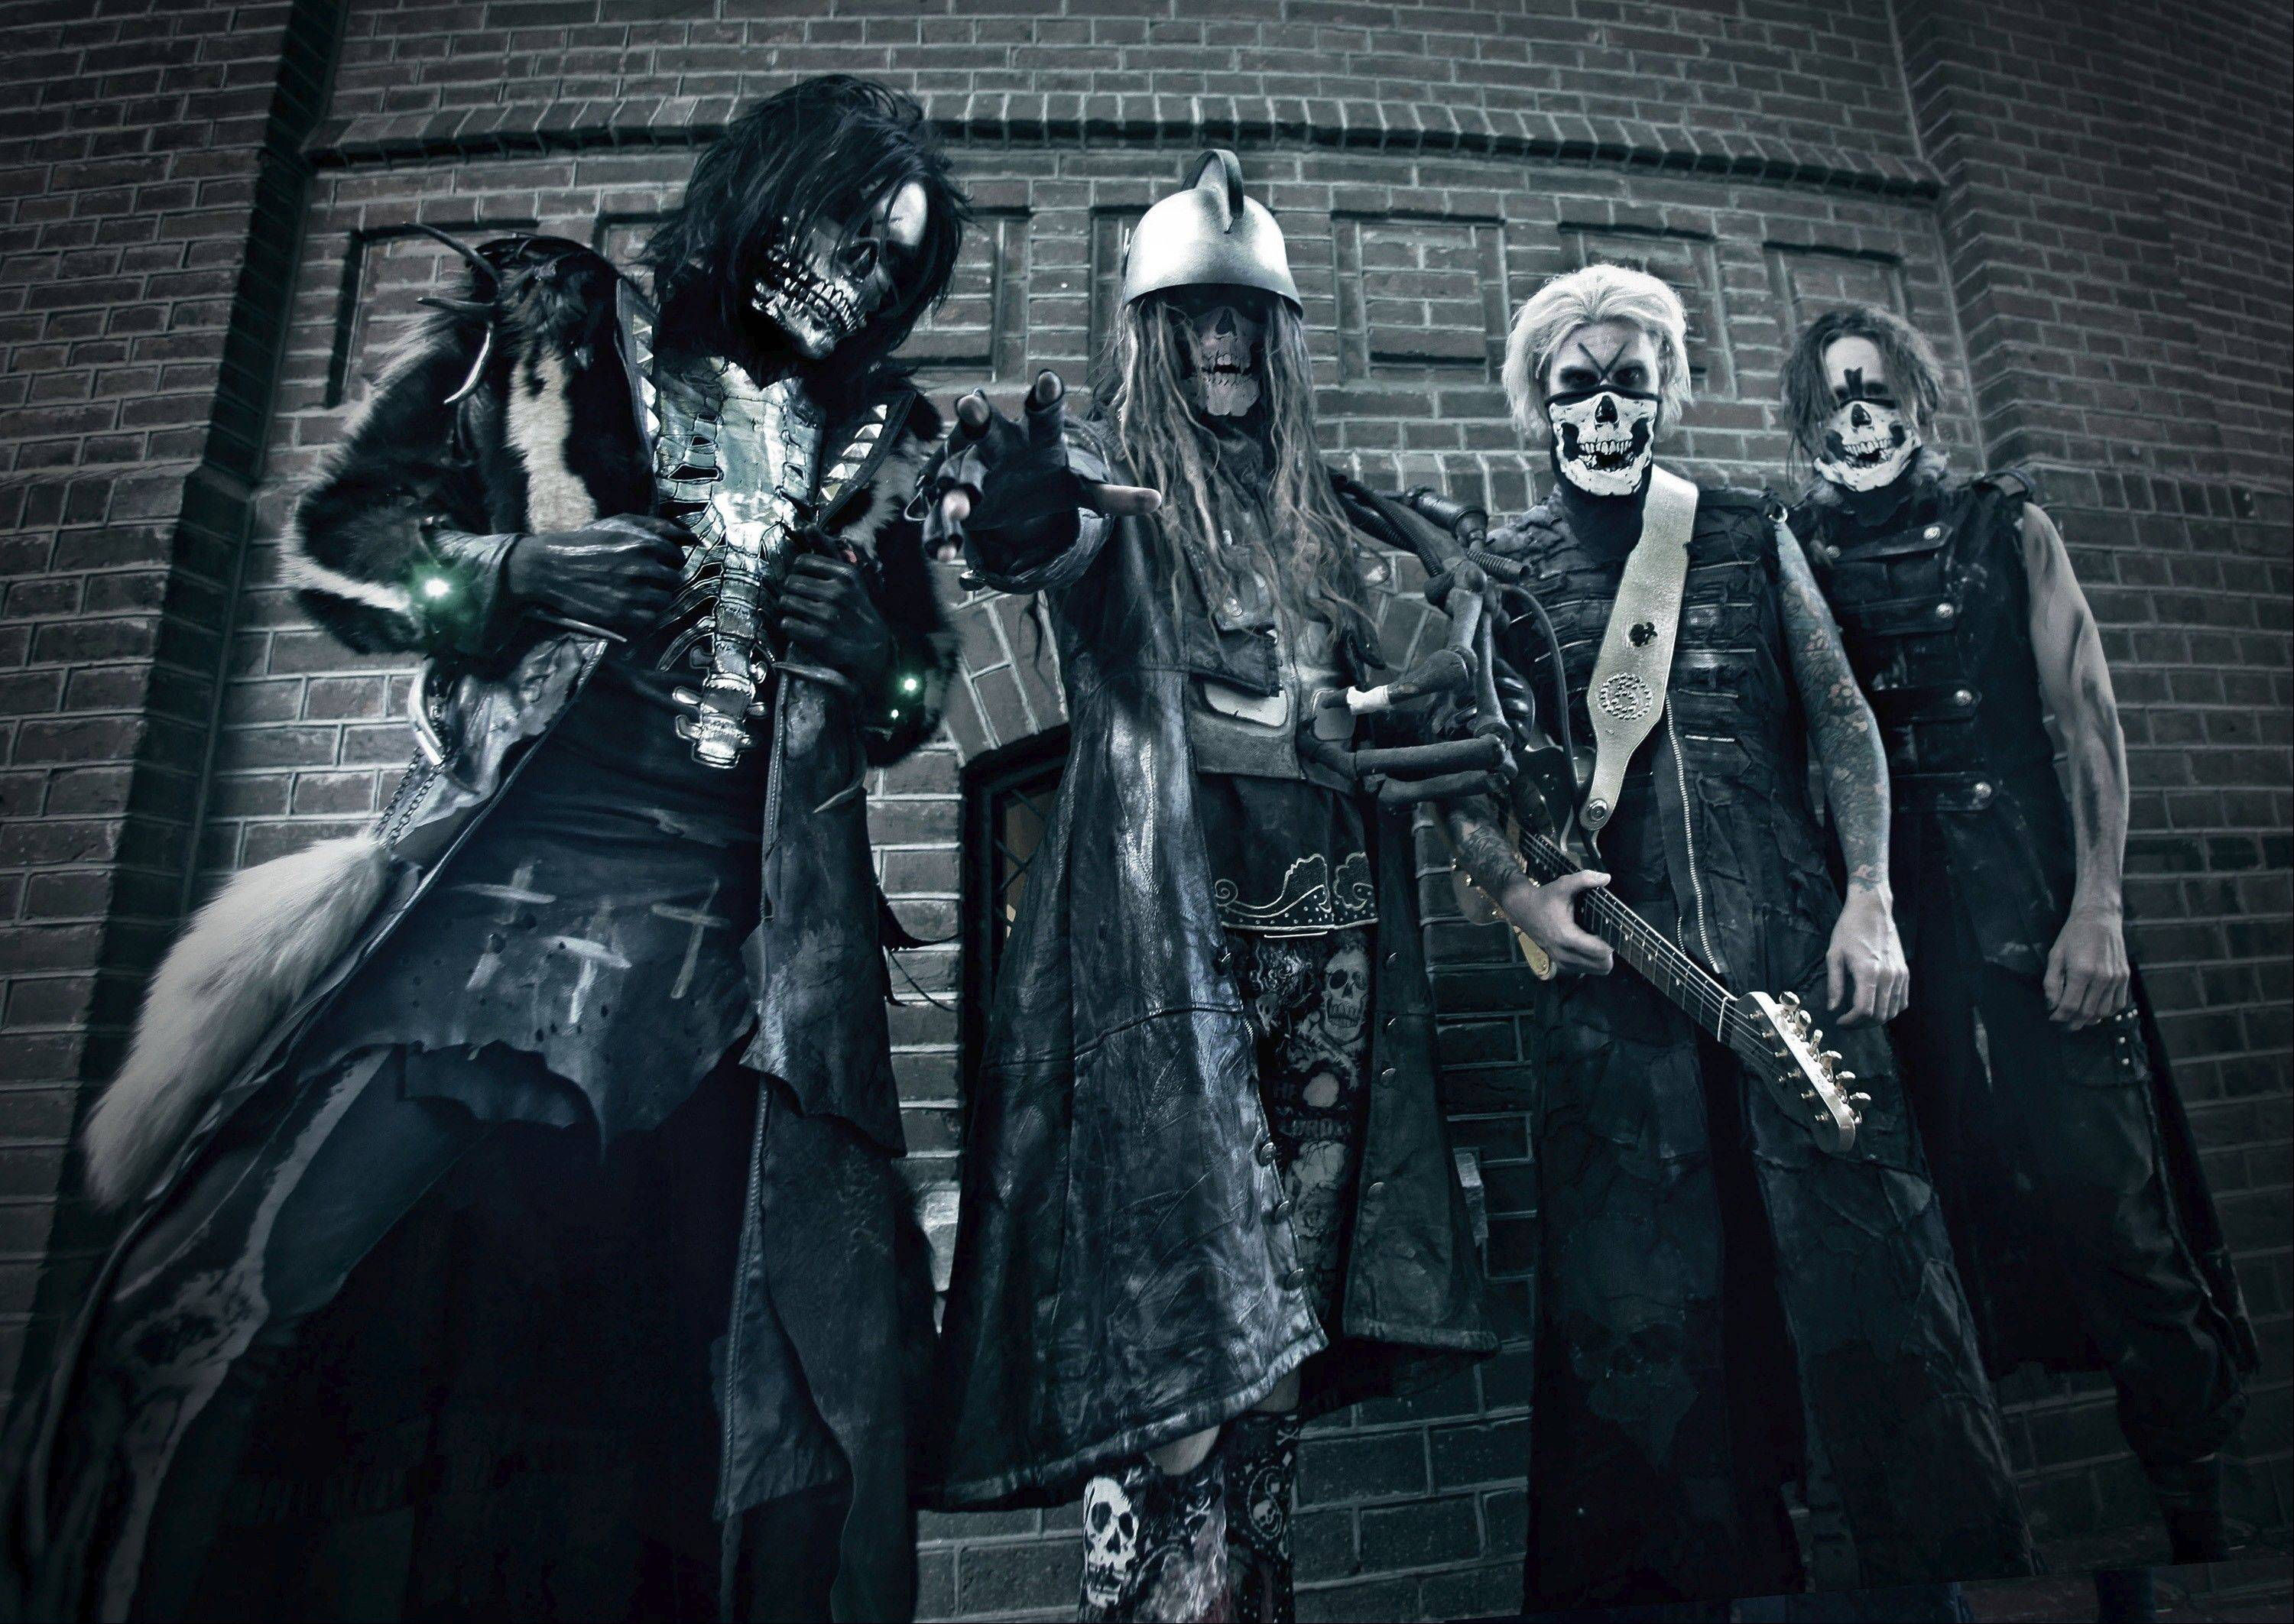 Rob Zombie will be a co-headliner alongside Marilyn Manson on Thursday, Oct. 11, when the Twins of Evil Tour stops at the Allstate Arena in Rosemont. Pictured left to right are band members Piggy D, Zombie, John5 and Ginger Fish.